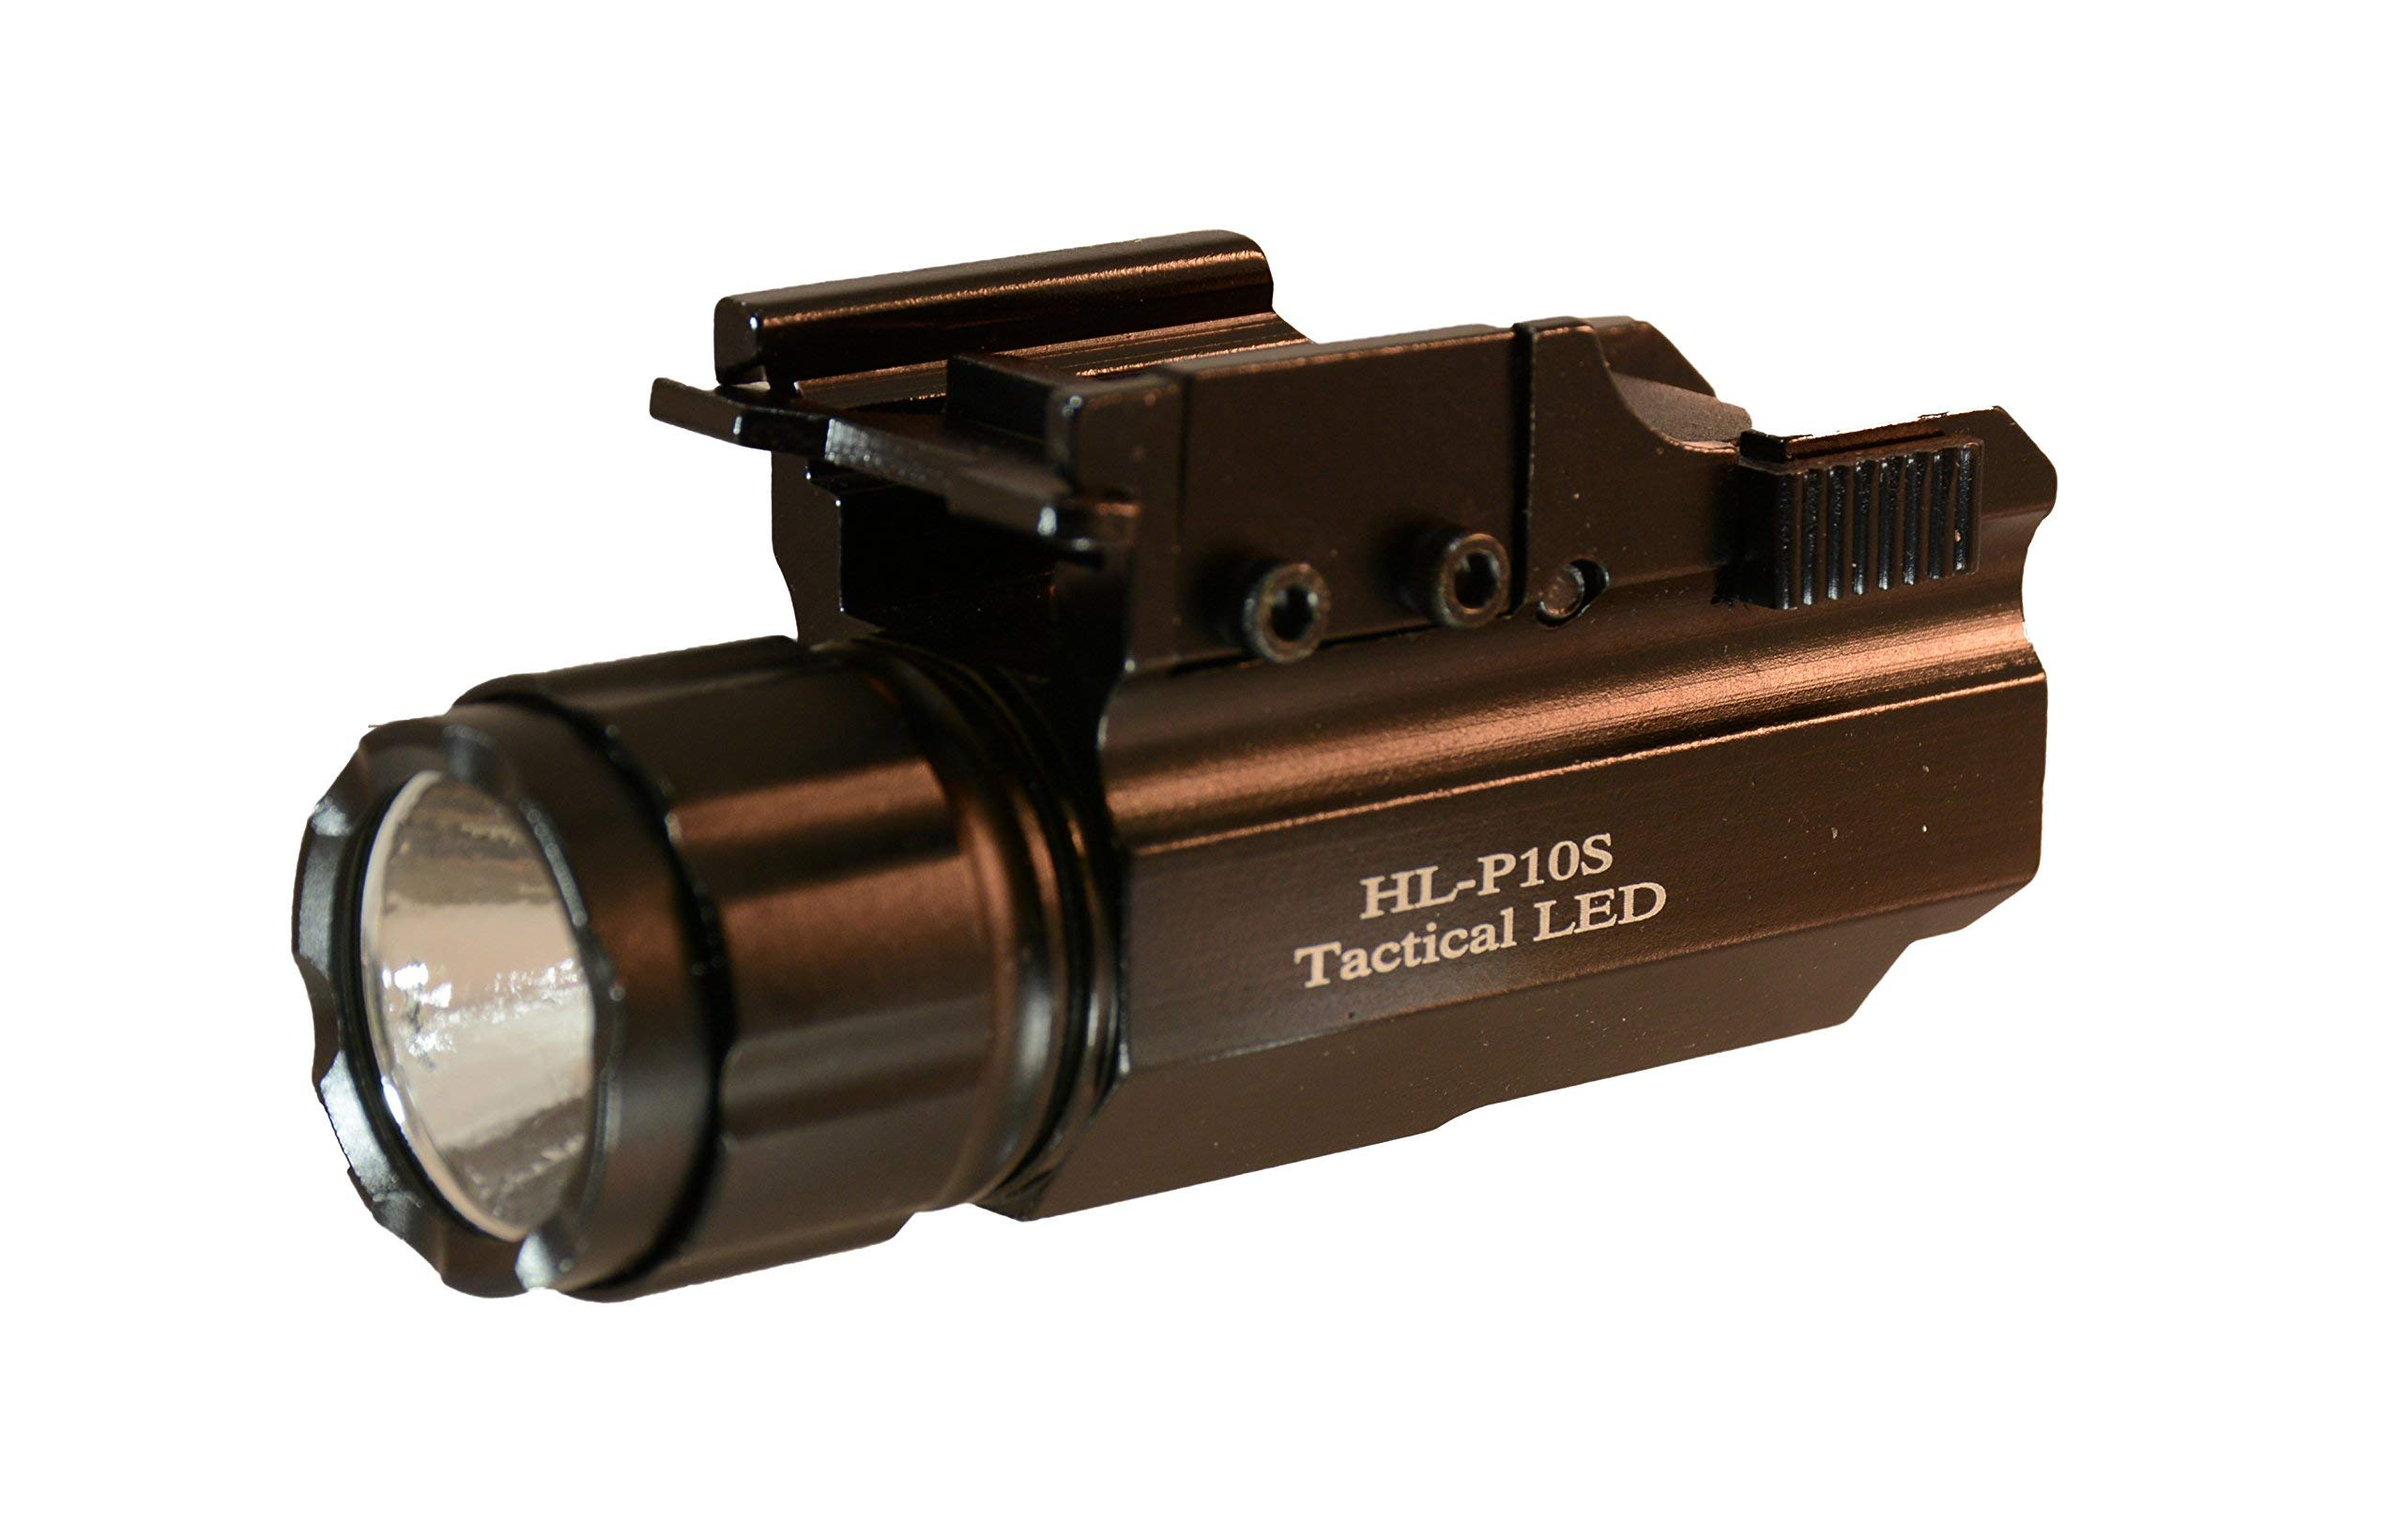 Aimkon HiLight P10S 500 Lumen Pistol LED Strobe Flashlight with Weaver Quick Release for Glock Series, Sig Sauer, Smith & Wesson, Springfield, Beretta, Ruger, and Heckler & Koch, etc. by HiLight